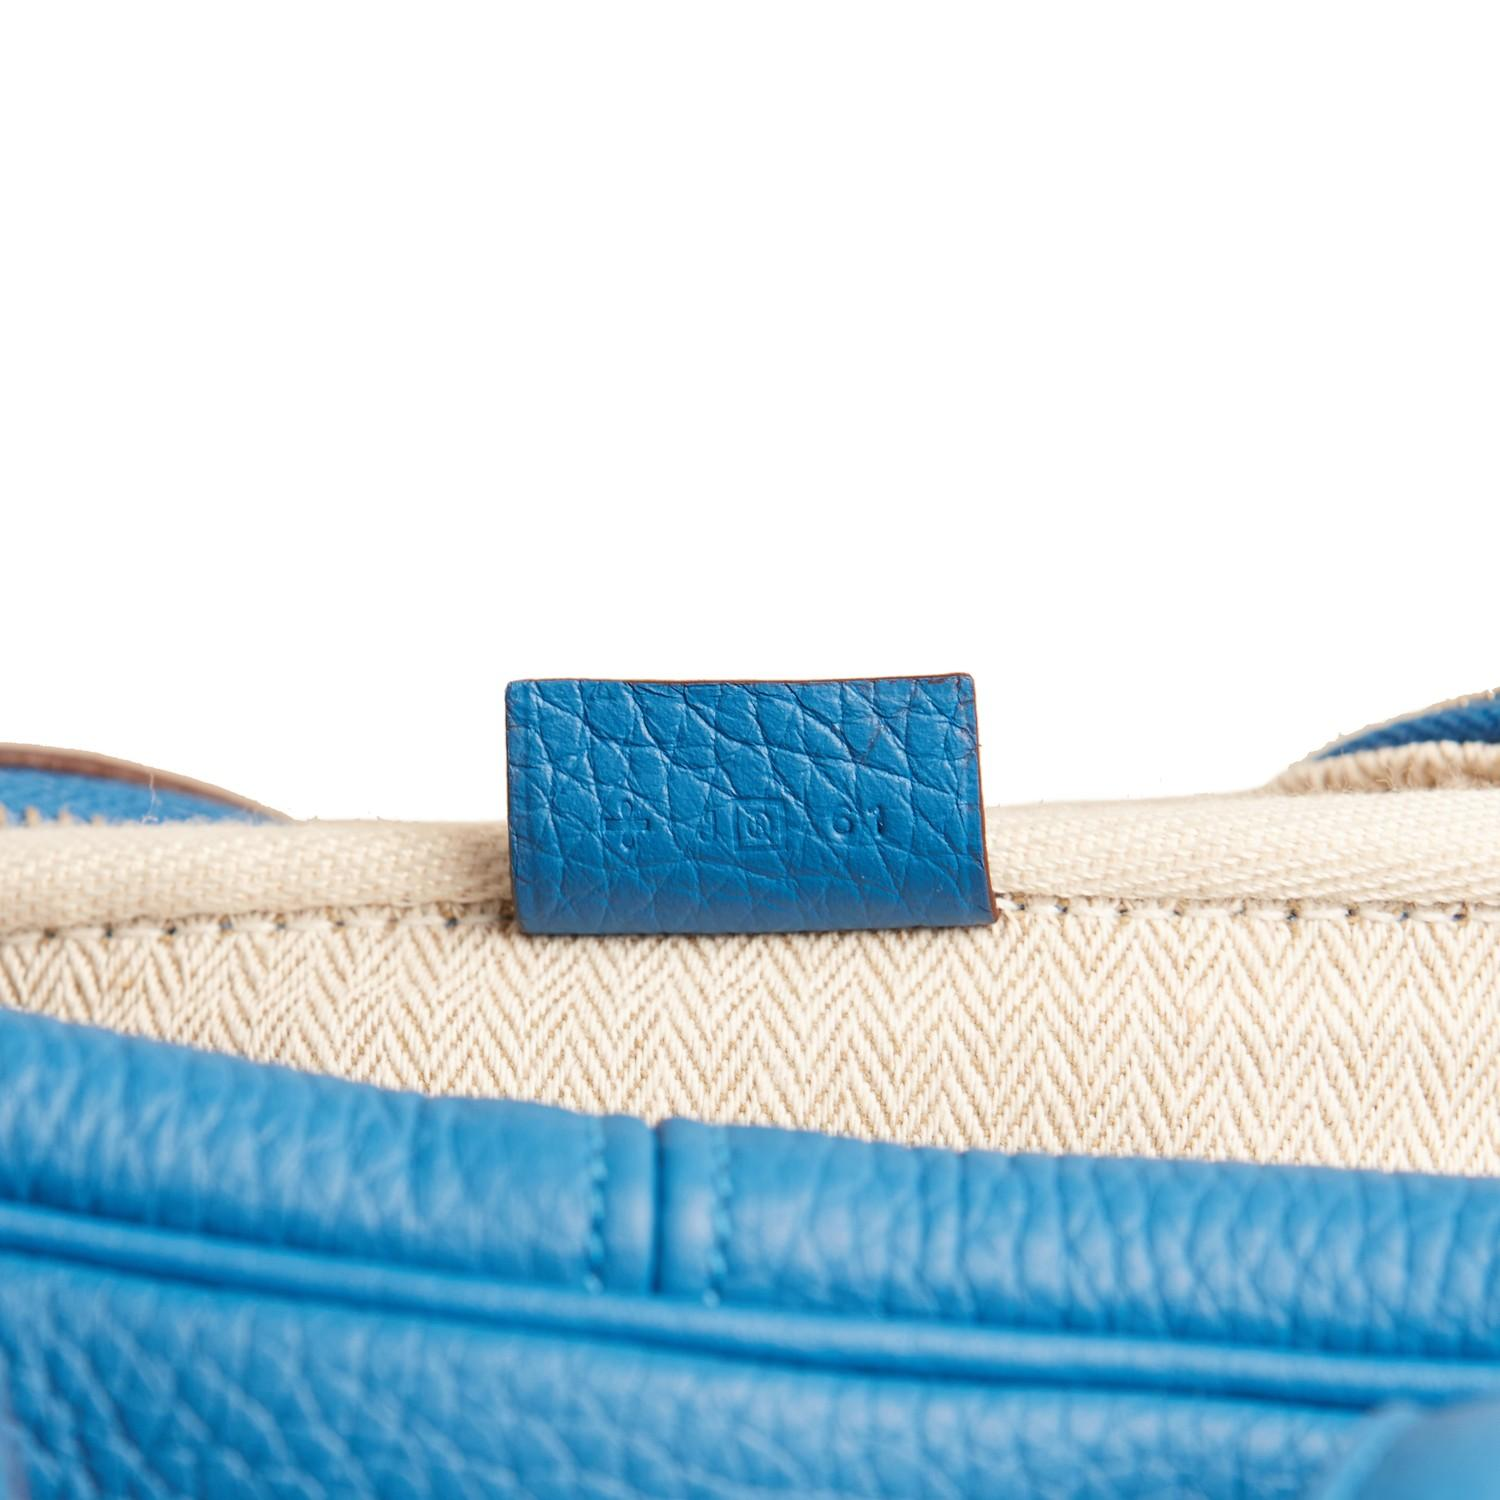 A Hermes Bleu de Galice Victoria II in clemence leather with palladium hardware, includes Dustbag. - Image 12 of 12